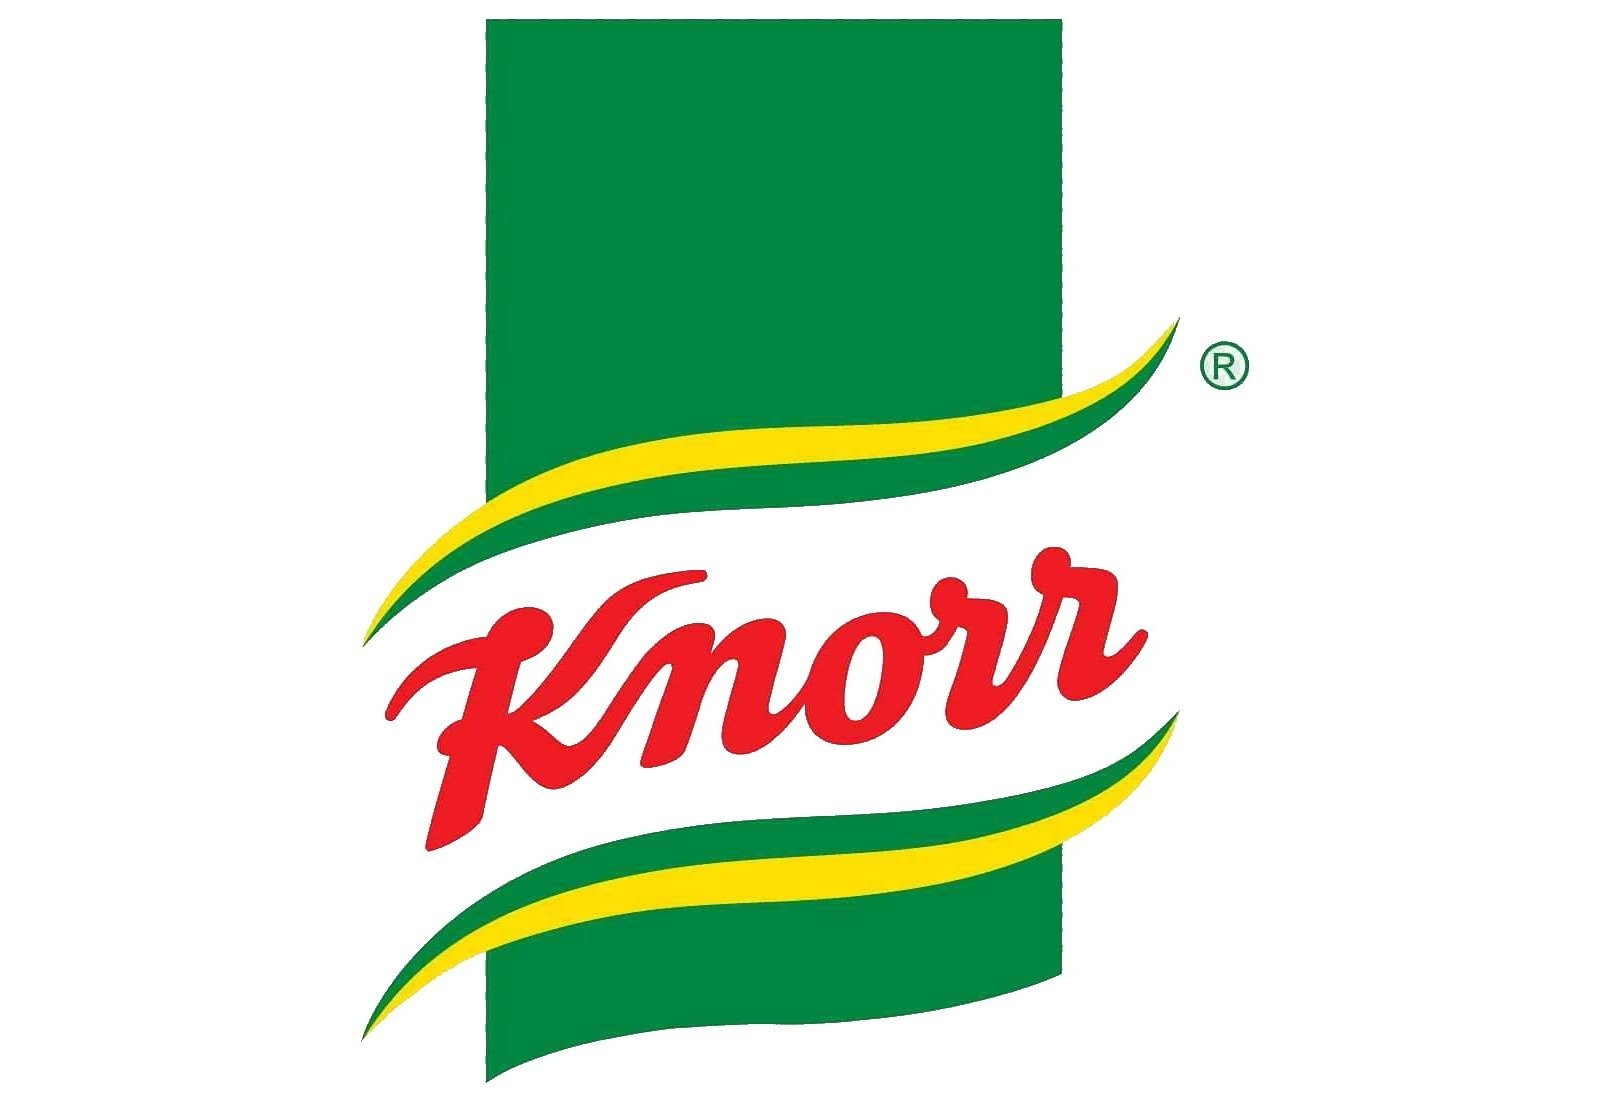 Knorr Pasta & Rice, 9,/1,560 Cases, Ext. Retail $40,868, Newville, PA